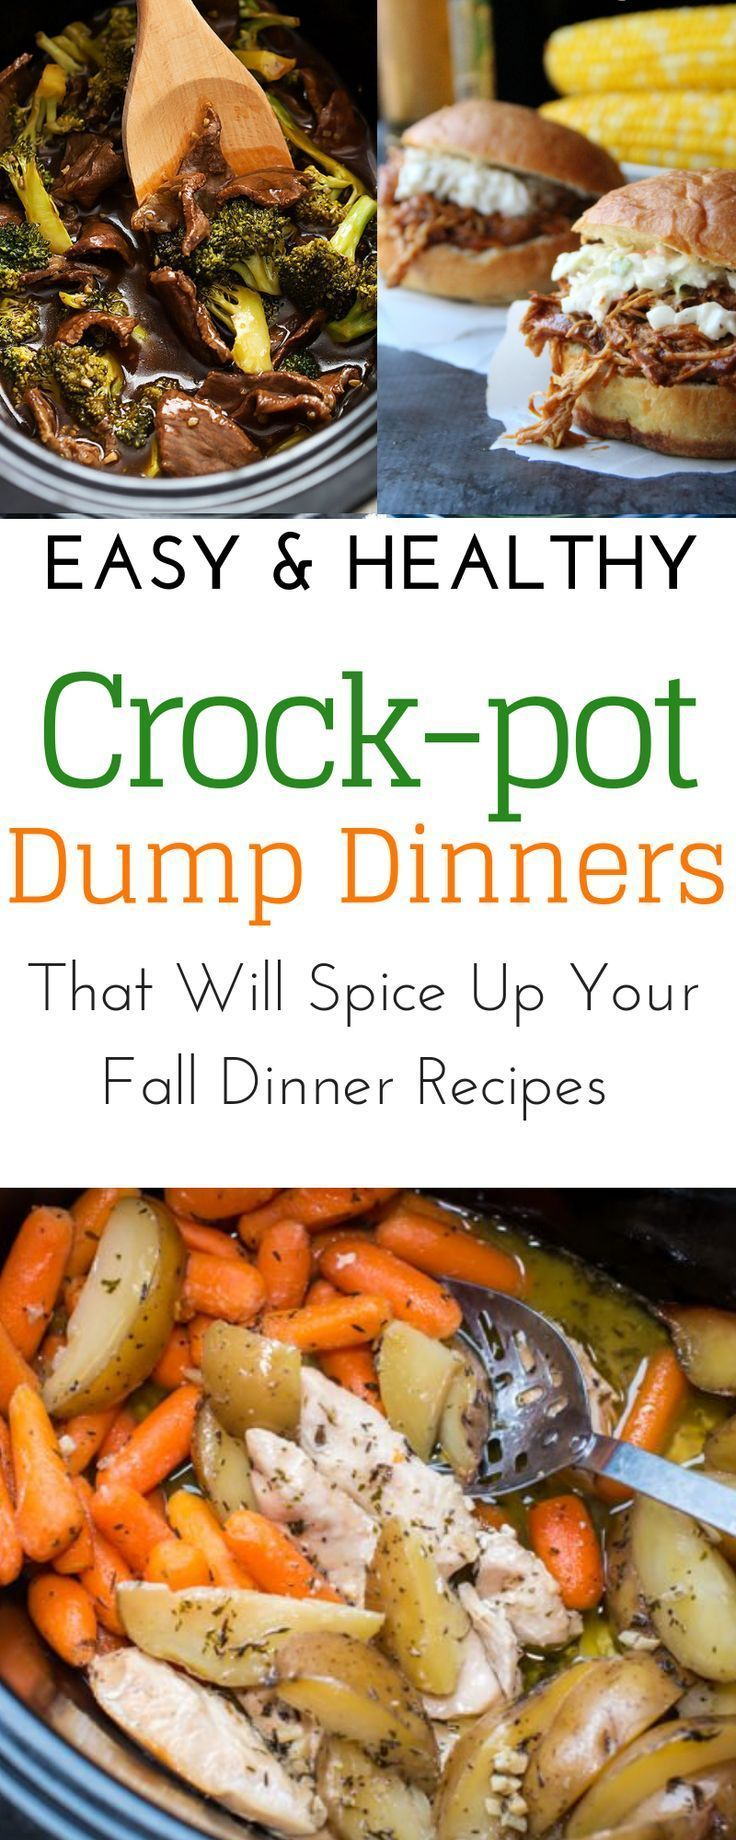 7 Healthy Slow Cooker Dinner Recipes With Soups Chicken Beef Pork Or Vegetarian Easy Crockpot Dinners Crockpot Dinner Crockpot Recipes For Kids